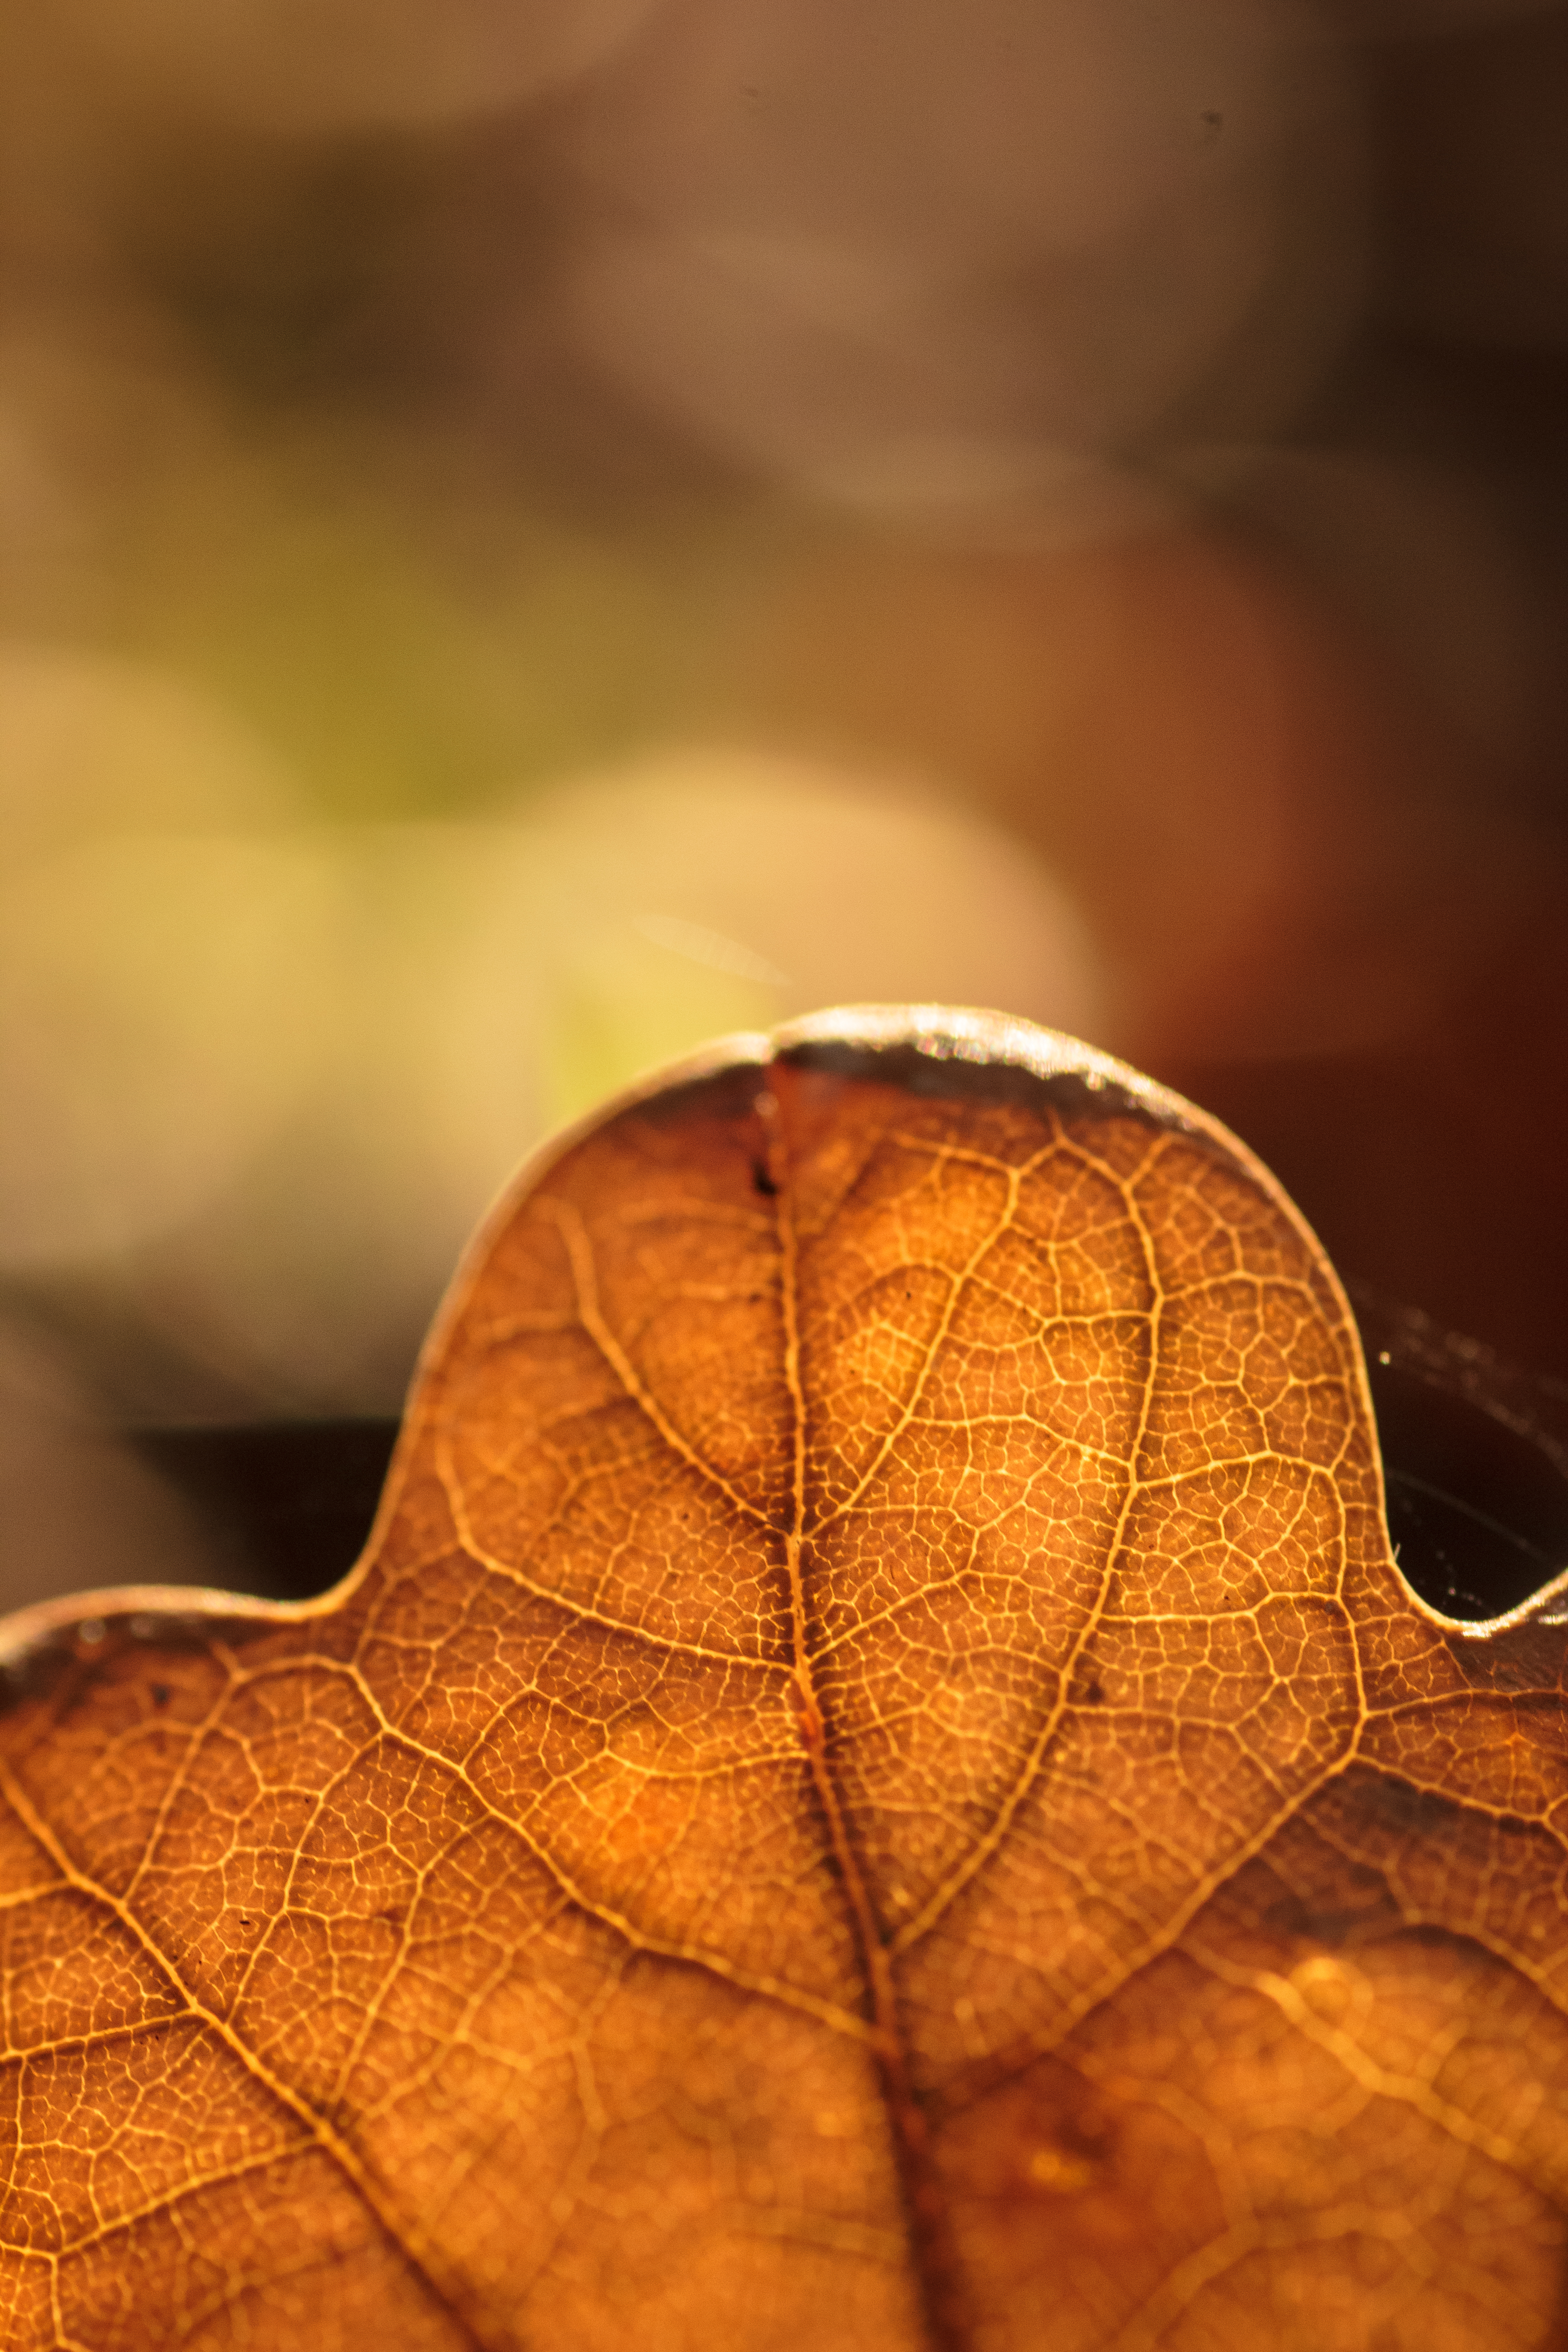 127876 download wallpaper Macro, Sheet, Leaf, Veins, Autumn, Blur, Smooth screensavers and pictures for free